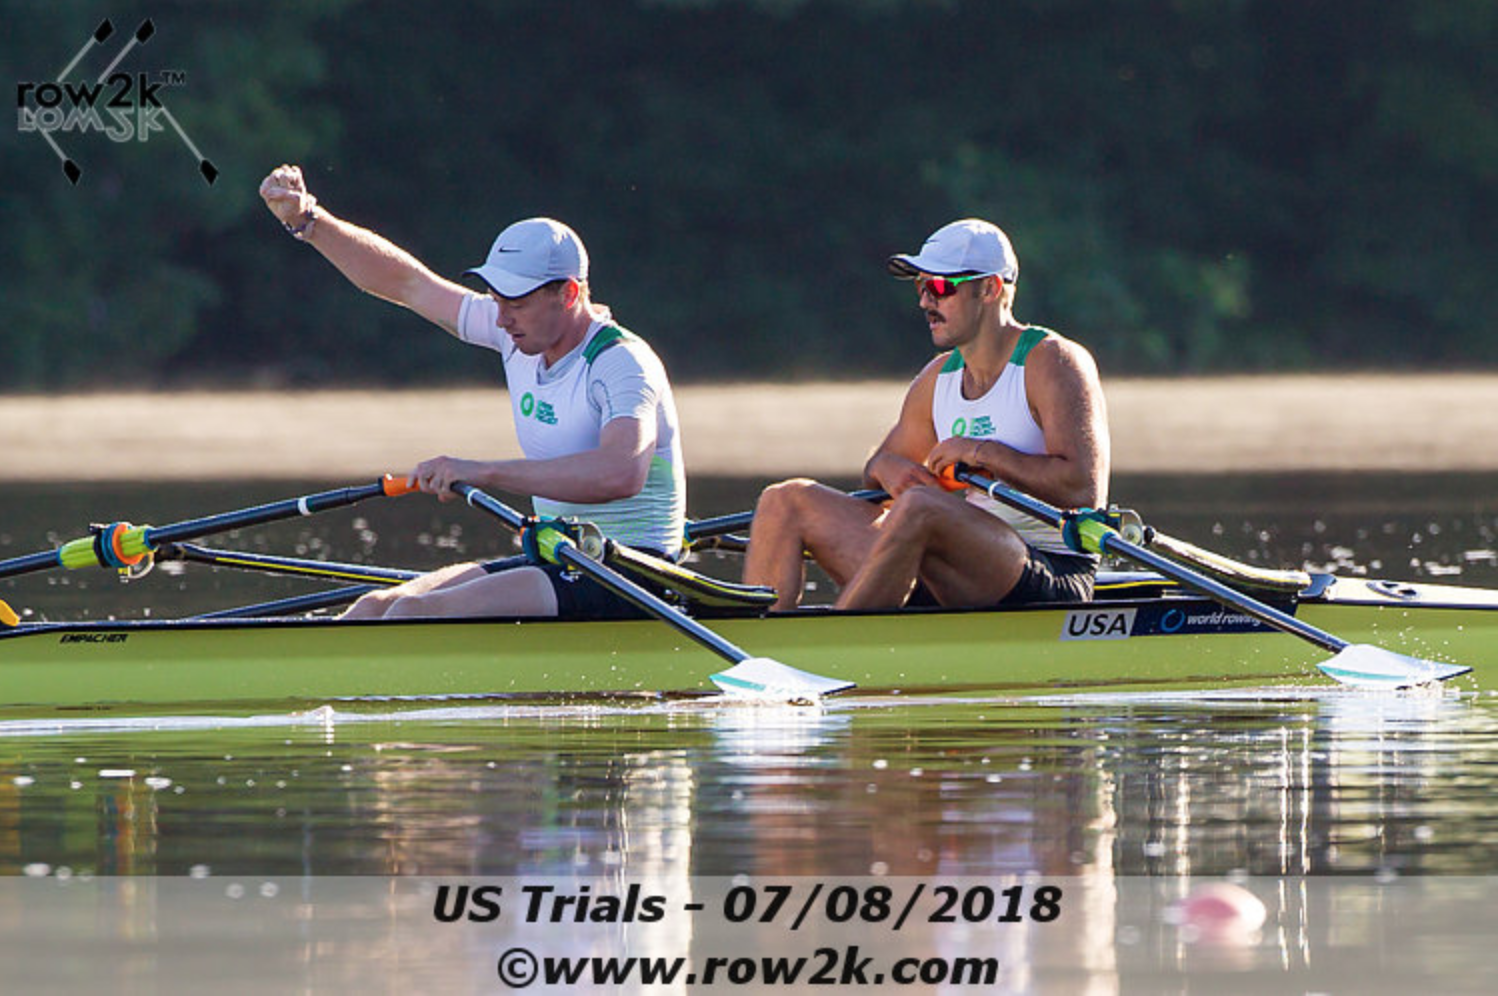 John Graves '10 (bow) earned his spot on the US National Team winning trials in the Double Sculls. Photo copyright Row2k.